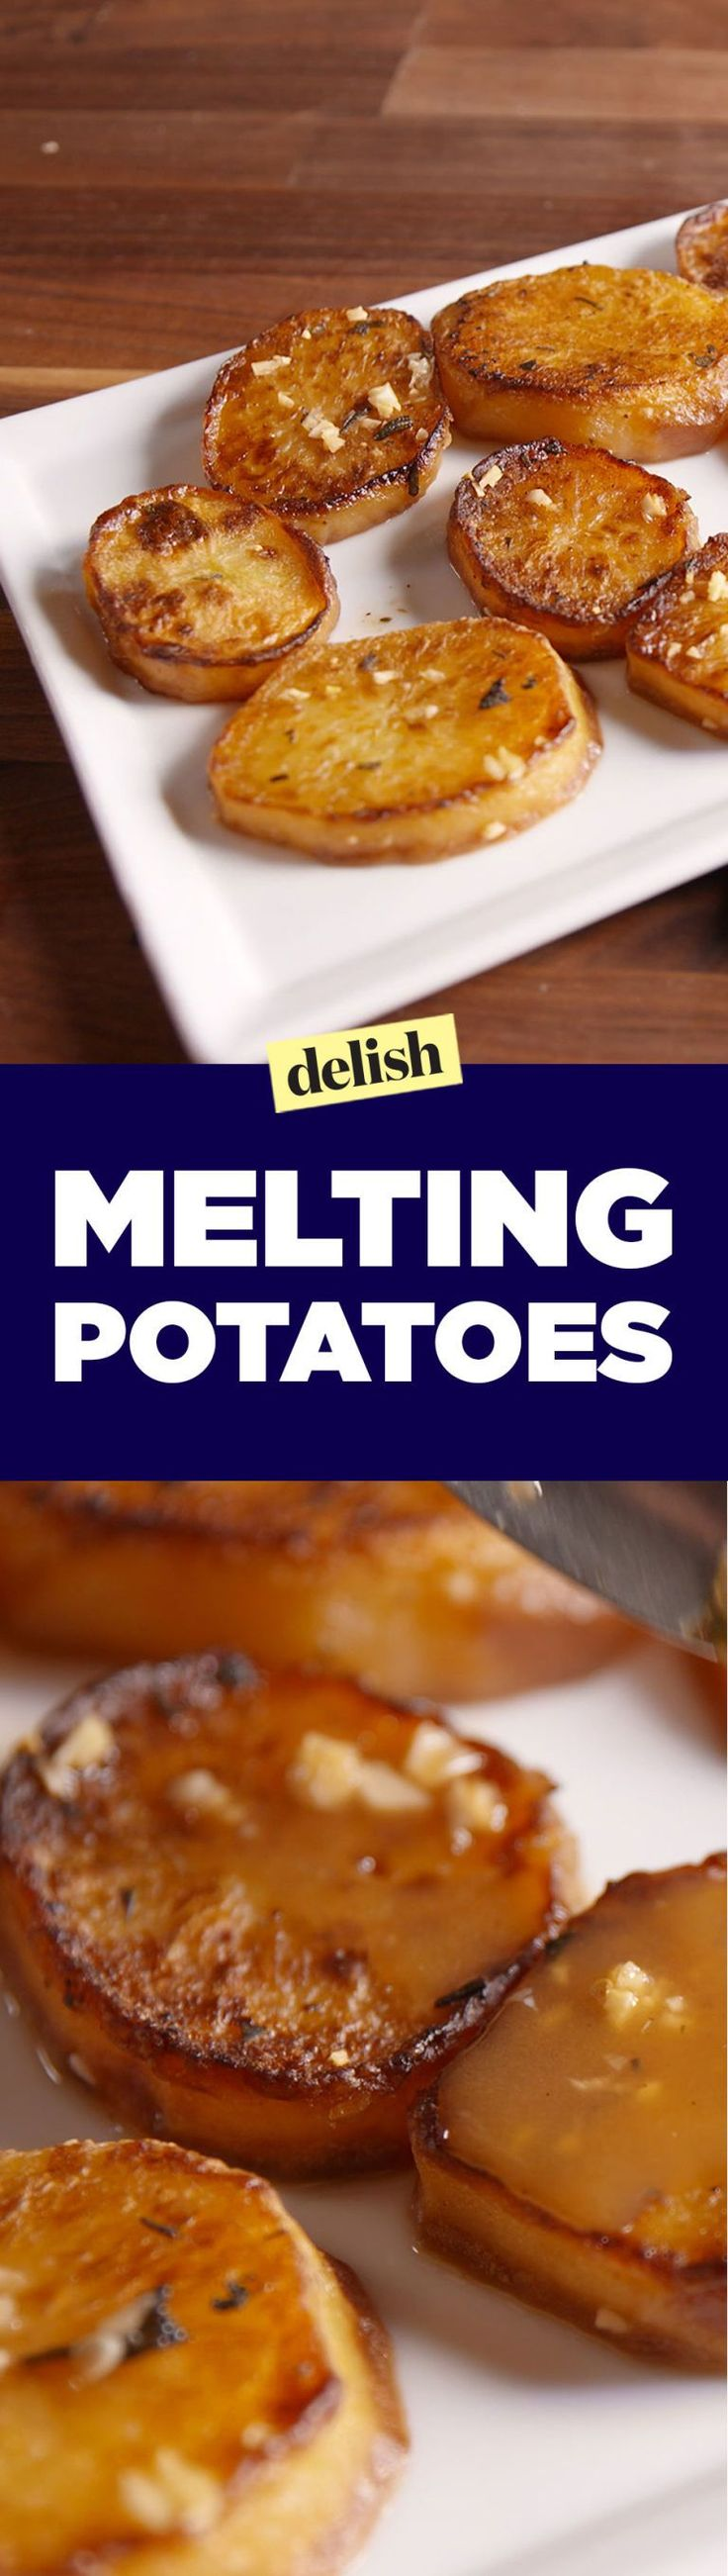 You Need To Know About (And Make) Melting Potatoes